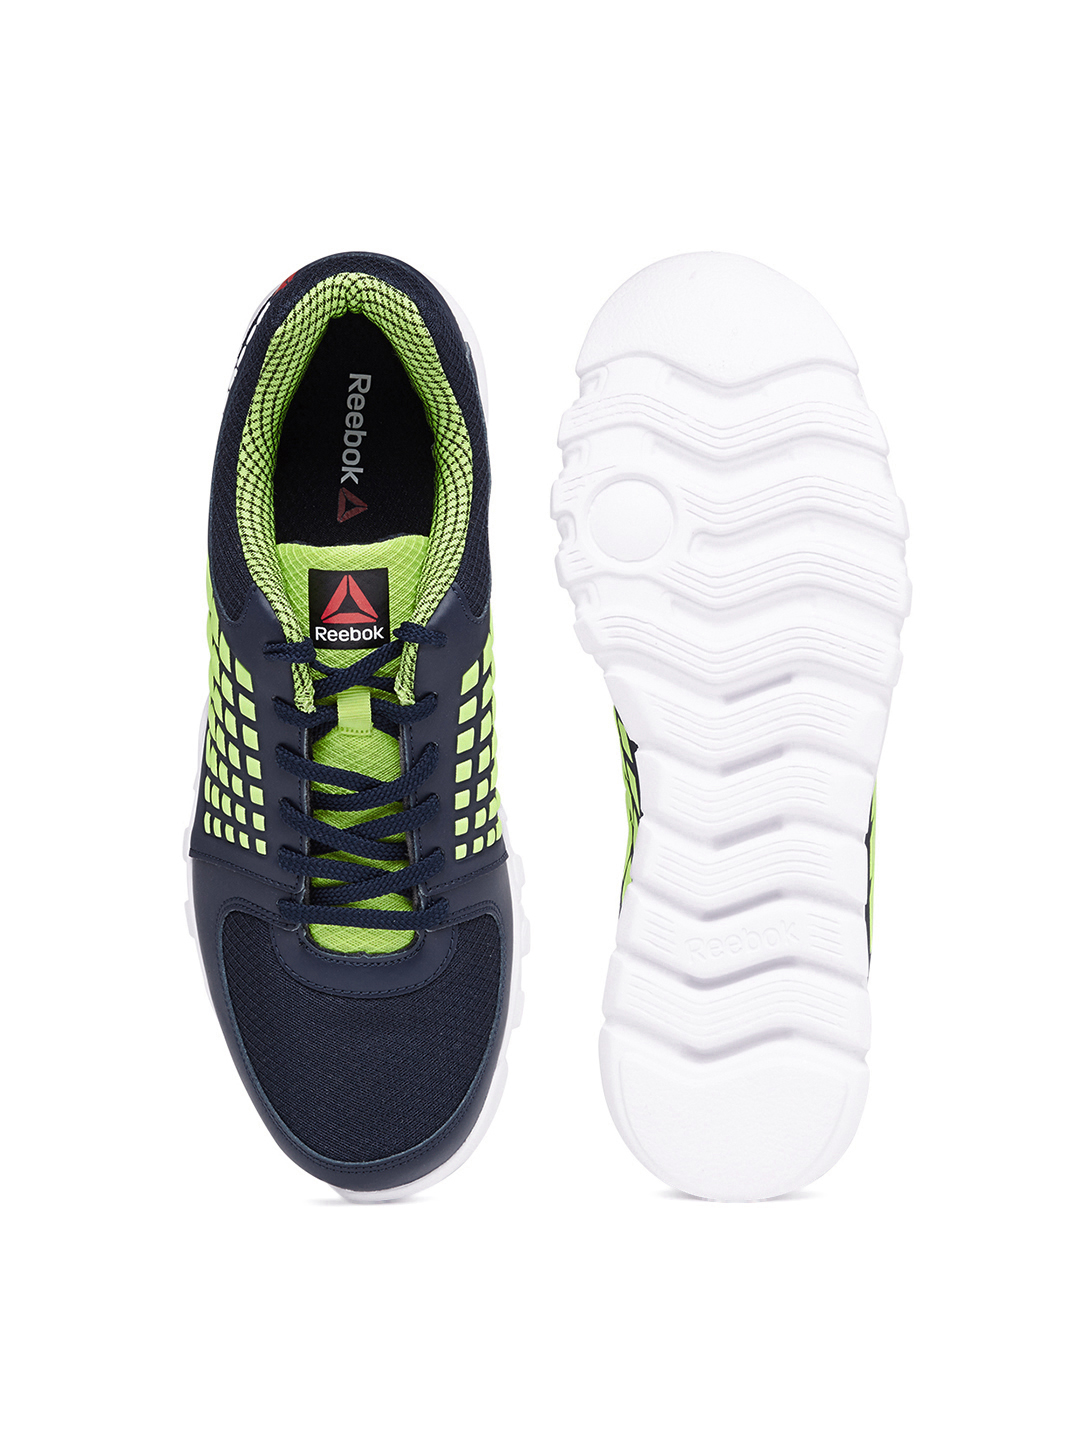 f3ea04b8cc3a28 Reebok Sports Shoes Price List in India 31 March 2019